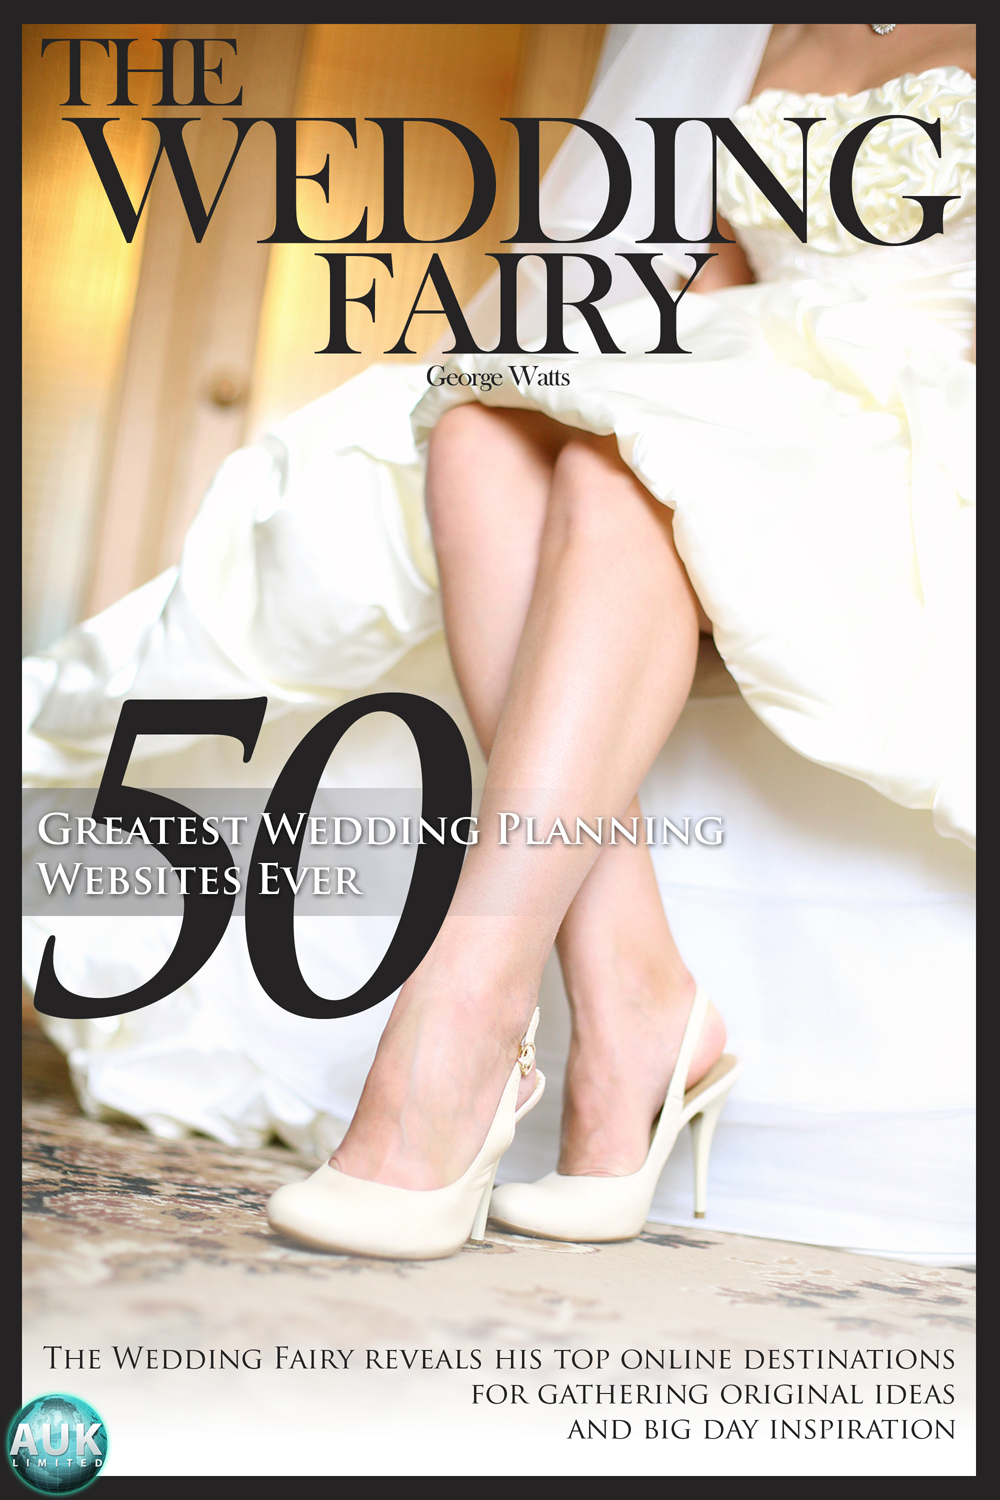 50 Greatest Wedding Planning Websites Ever!